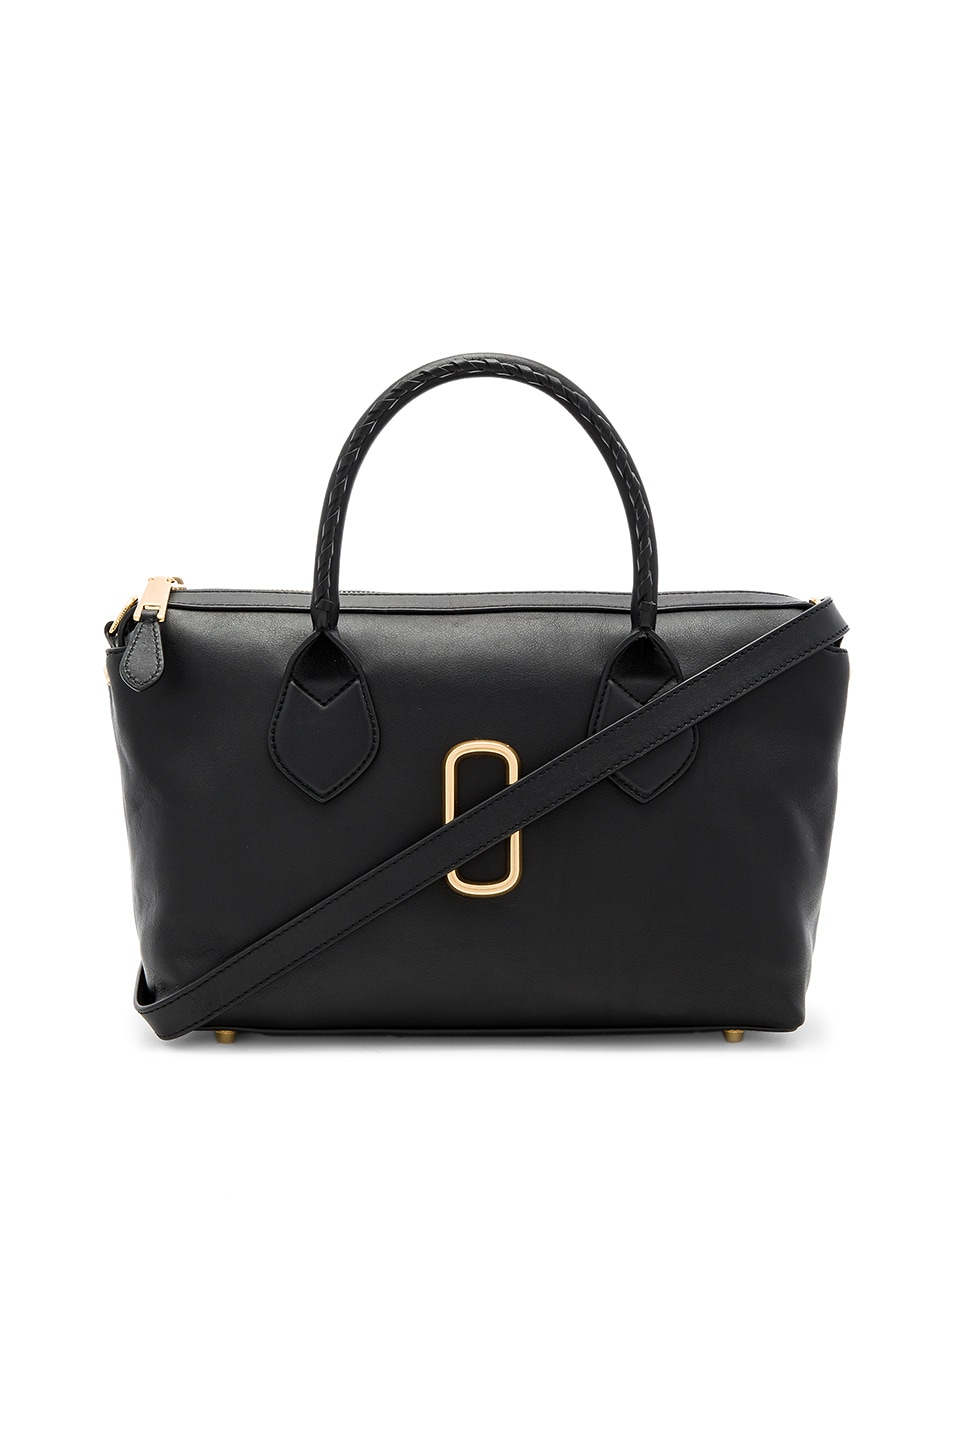 c566c27fbf2c Marc Jacobs Noho Medium E W Tote Bag in Black